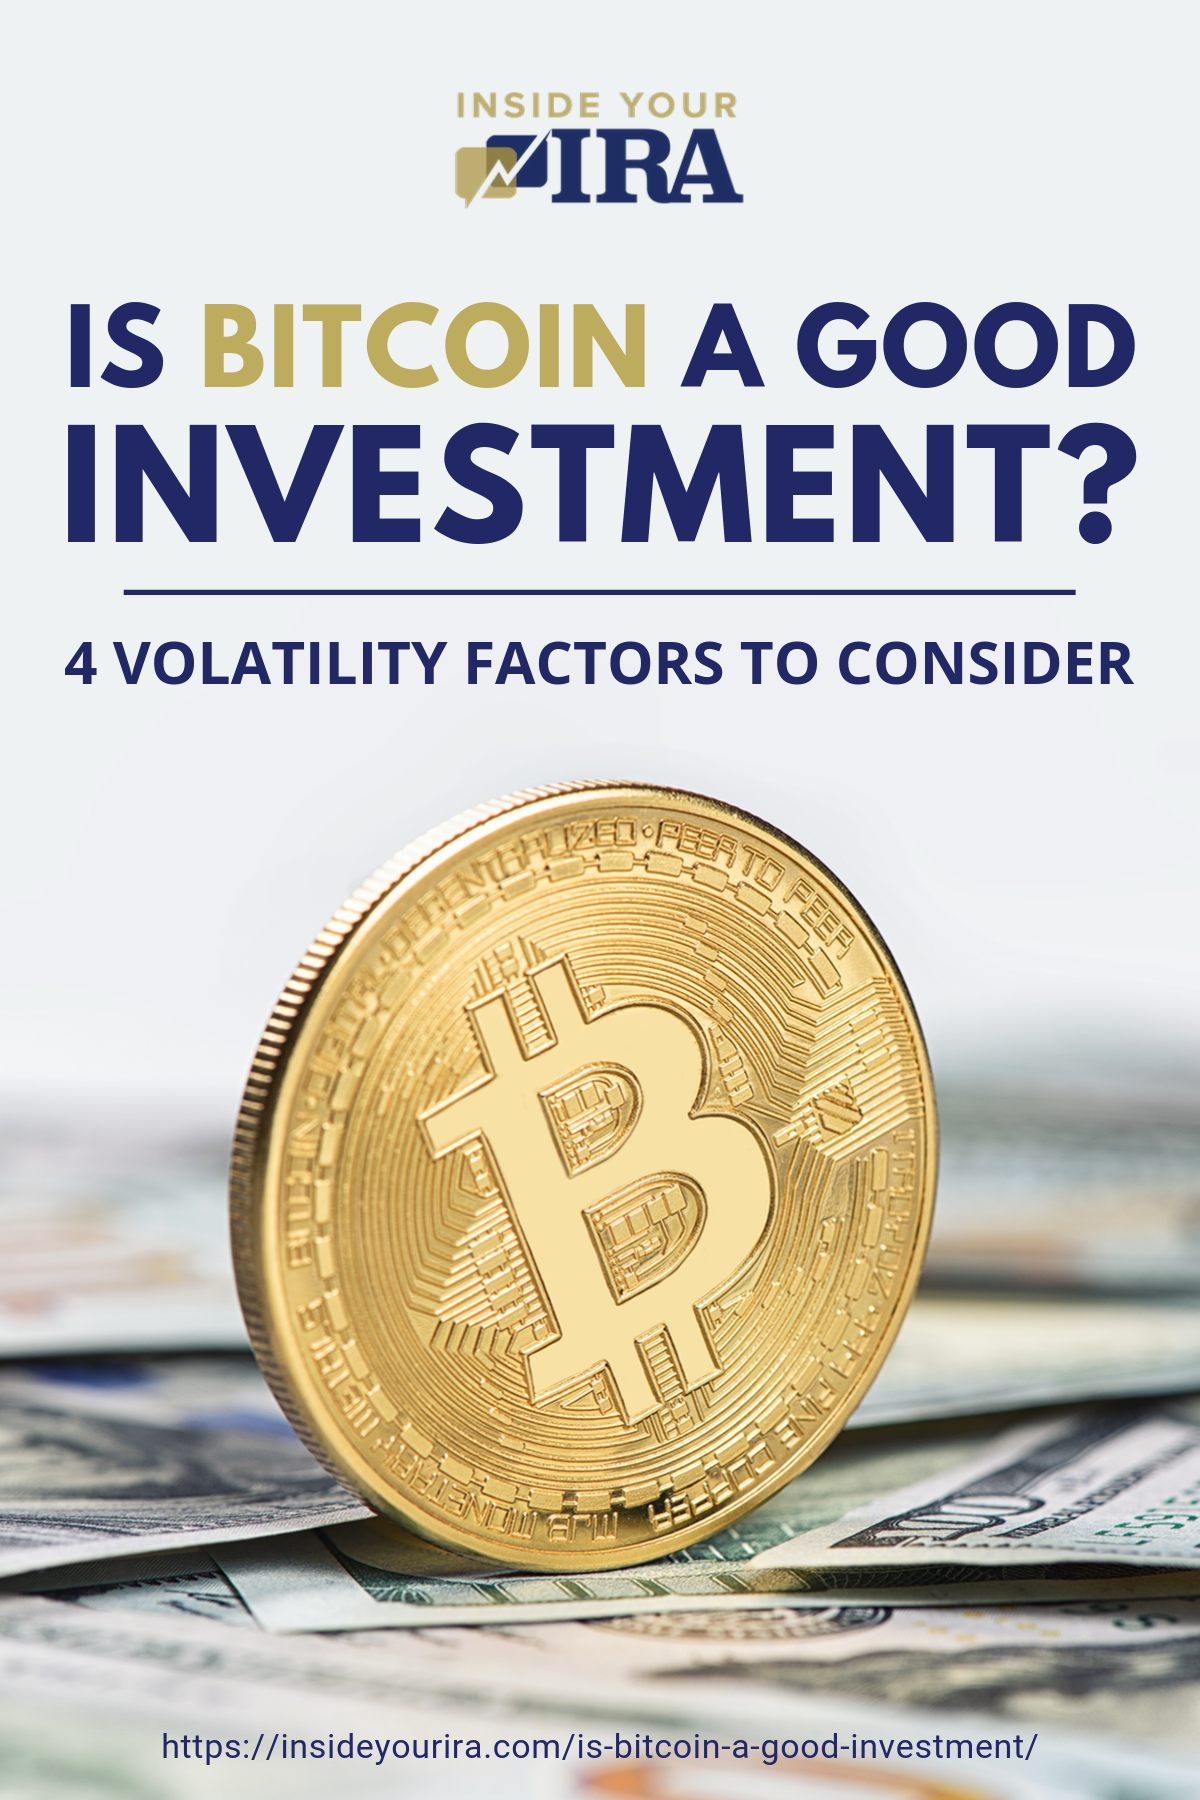 Is Bitcoin A Good Investment? 4 Volatility Factors To Consider   Inside Your IRA https://www.insideyourira.com/is-bitcoin-a-good-investment/